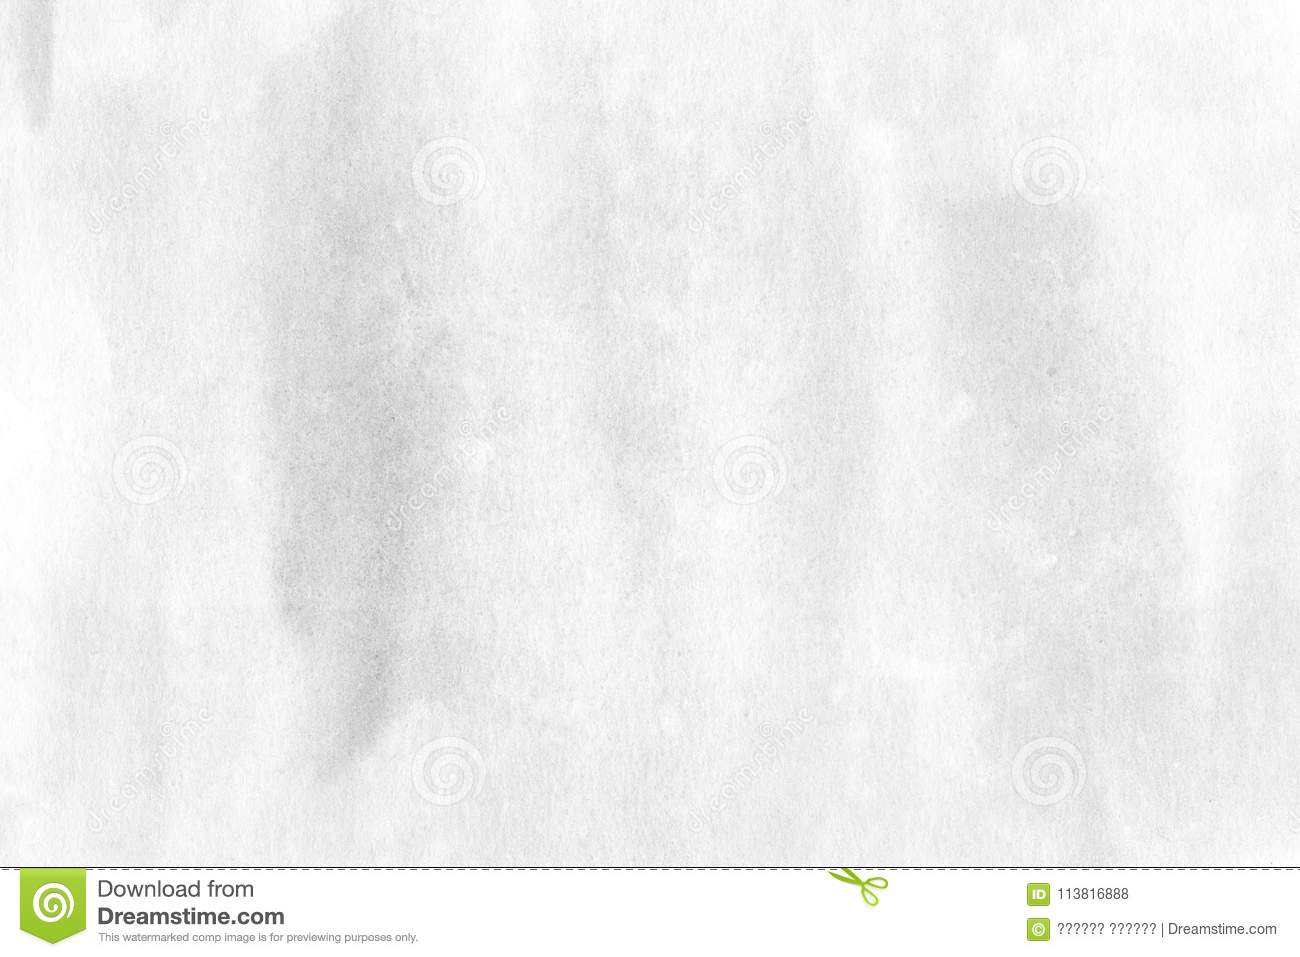 Amazing Wallpaper Grey Watercolor - soft-gray-watercolor-texture-background-hand-painted-card-text-design-wallpaper-paper-canvas-web-print-grey-drawn-stroke-113816888  Trends_813392.jpg